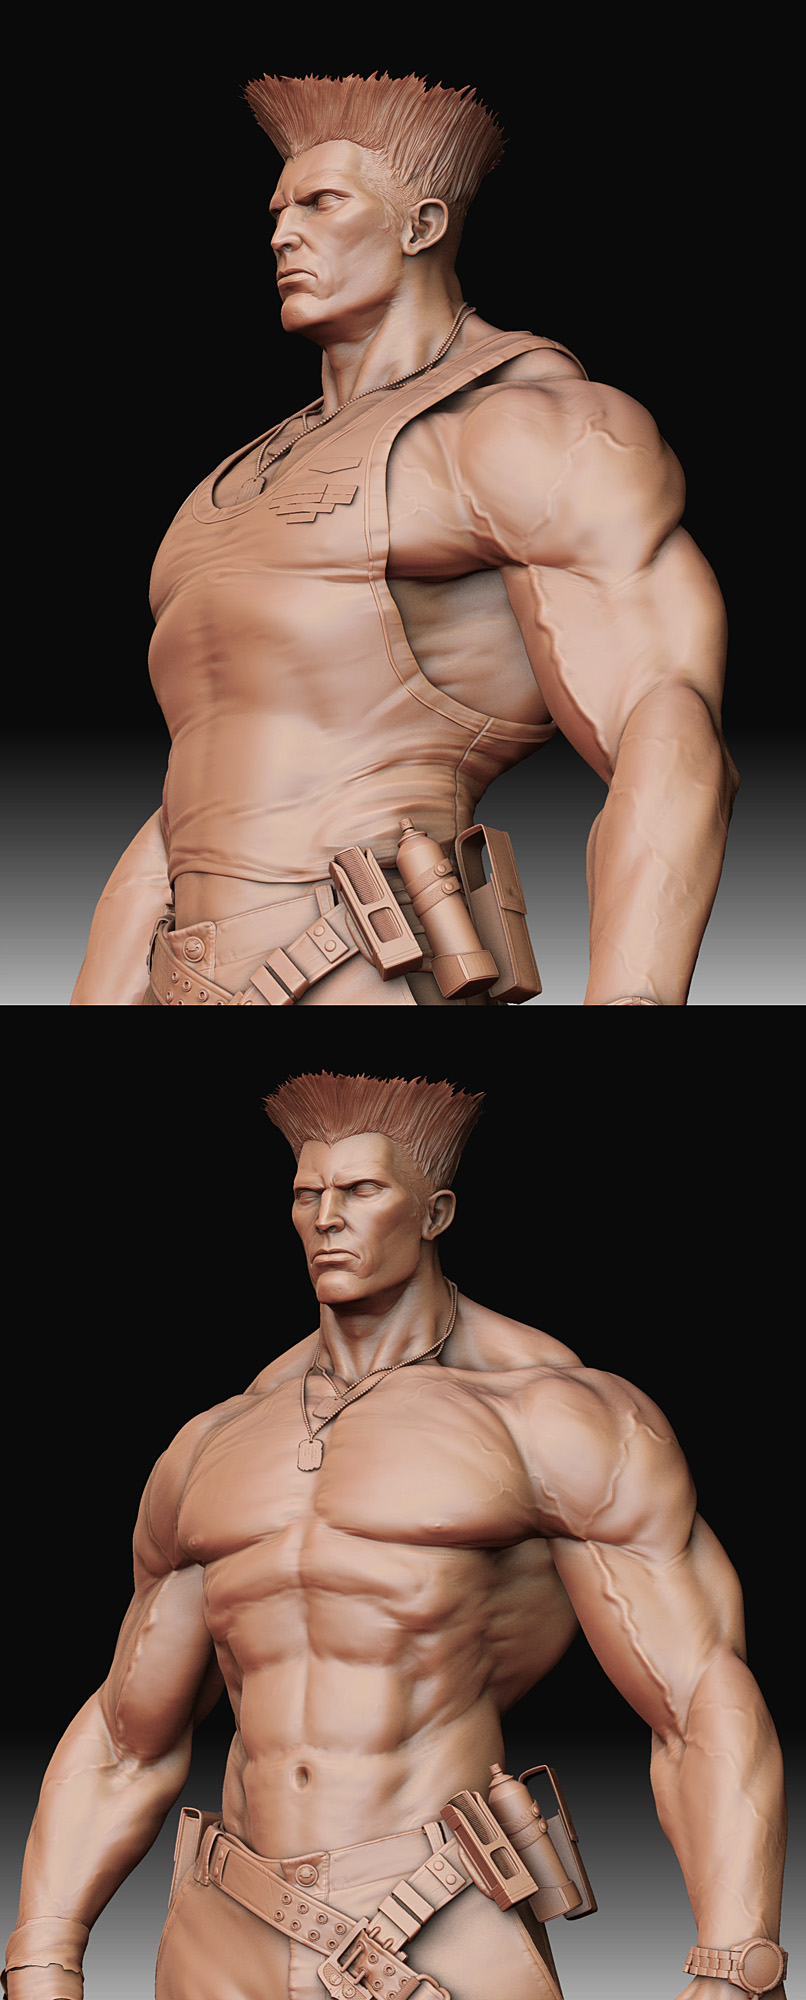 The Guile to show SSFIITHDROMG